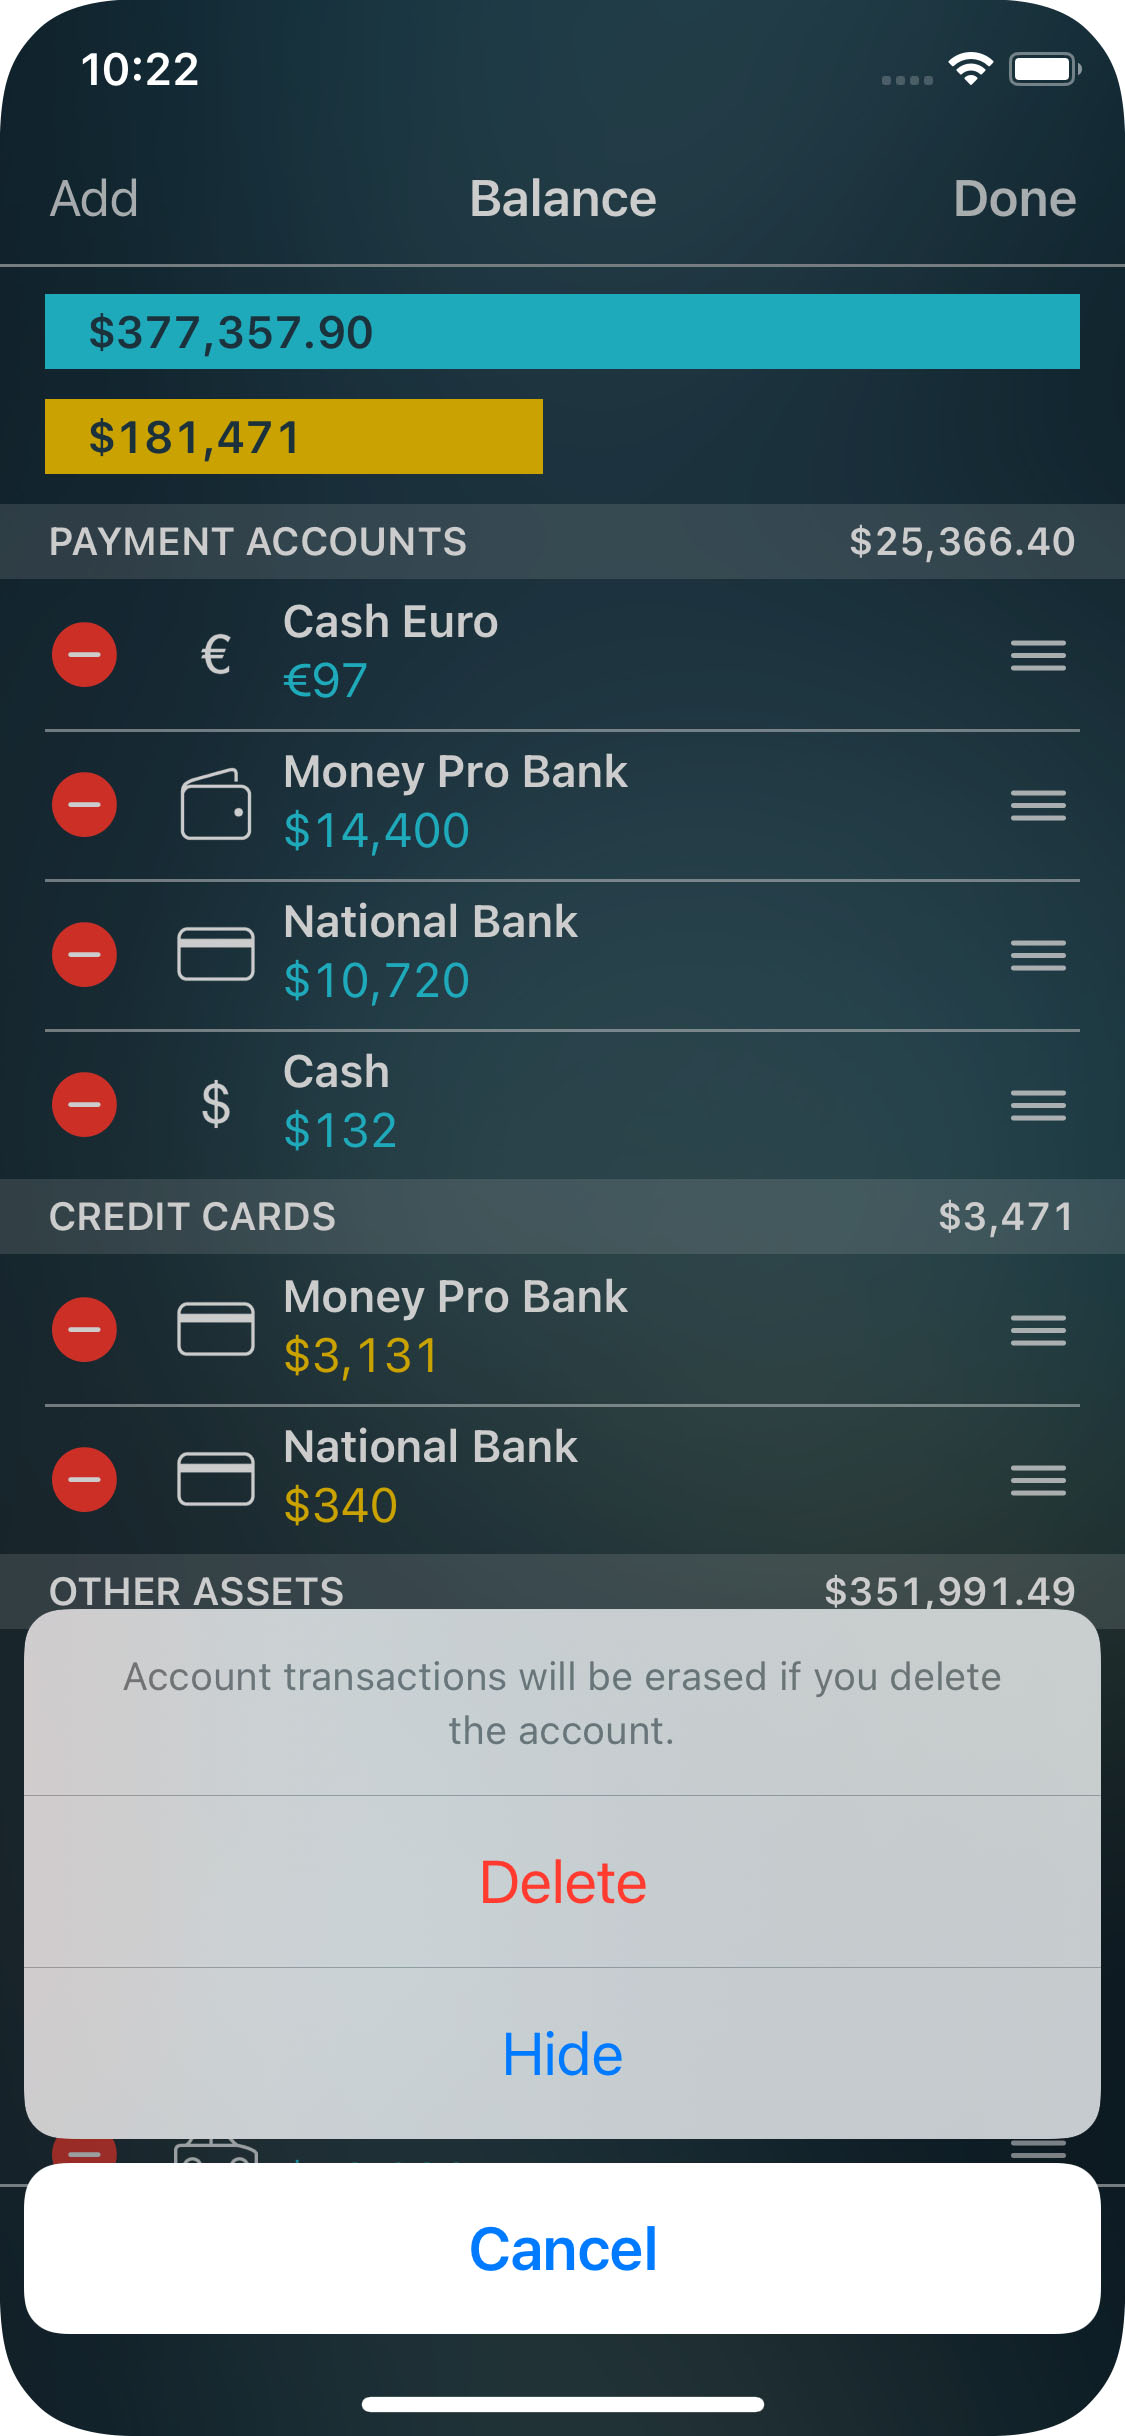 Money Pro - Deleting an account - iPhone